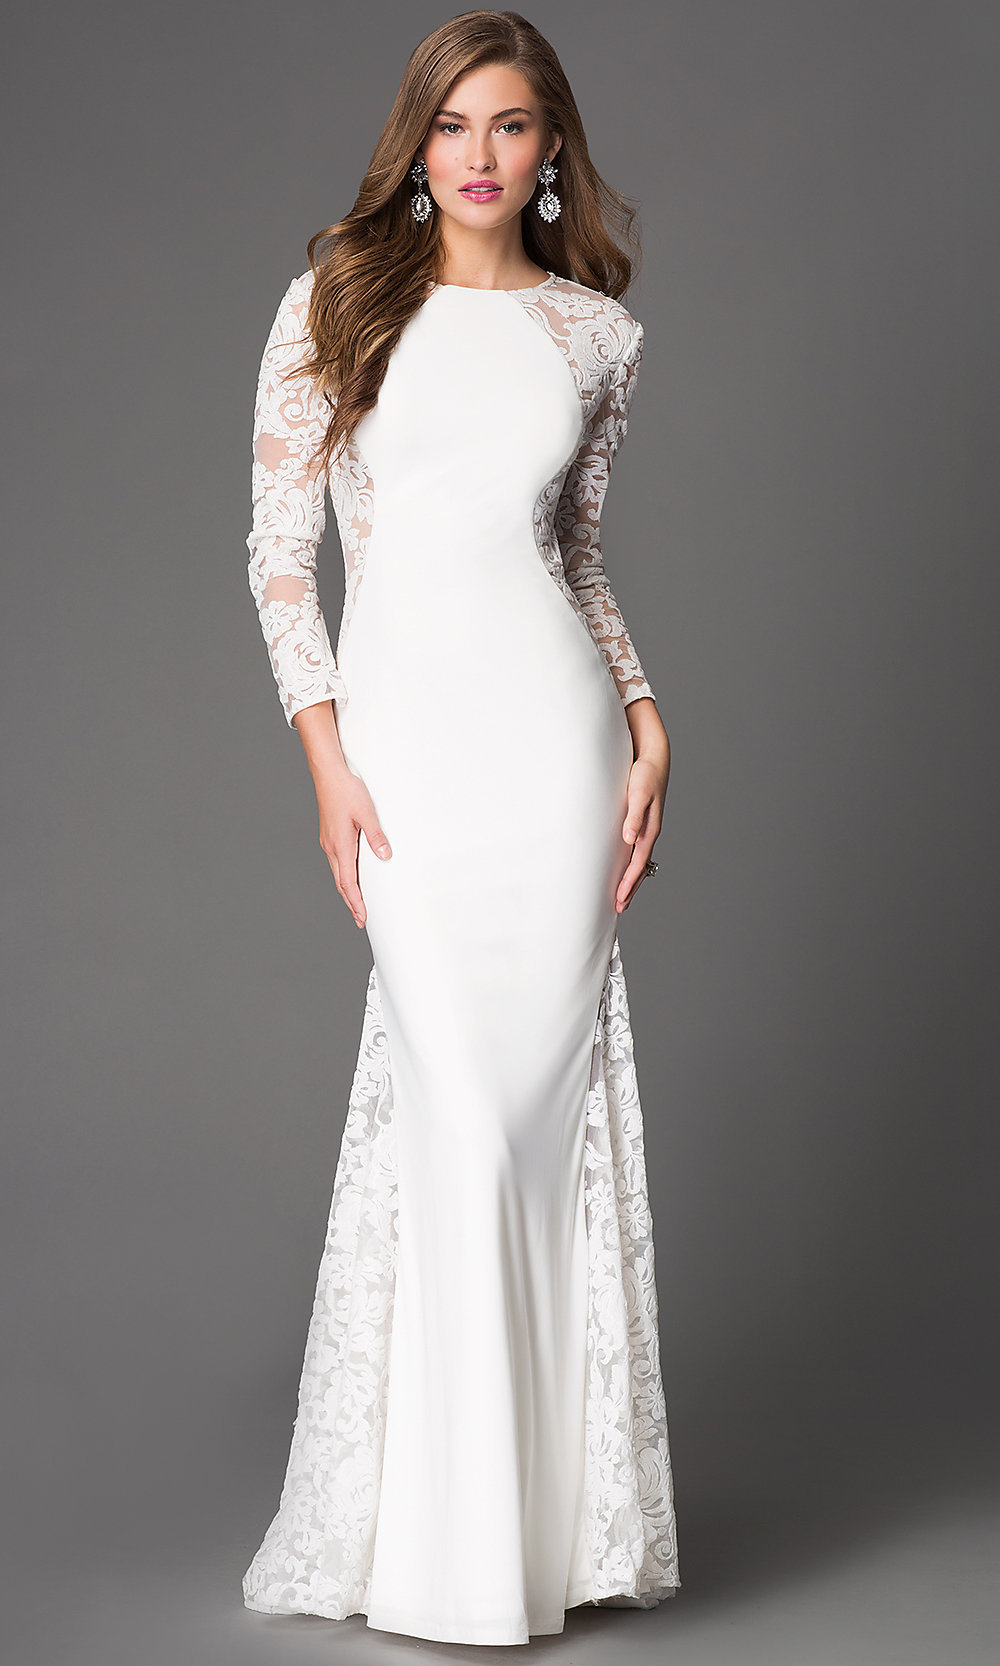 Do you dream of wearing a long sleeve wedding dress on your big day? Shop David's Bridal wide variety of wedding gowns with sleeves in lace & other designs! Wedding Dresses with Long Sleeves Product List. 1 Long Sleeve Lace Wedding Dress with .